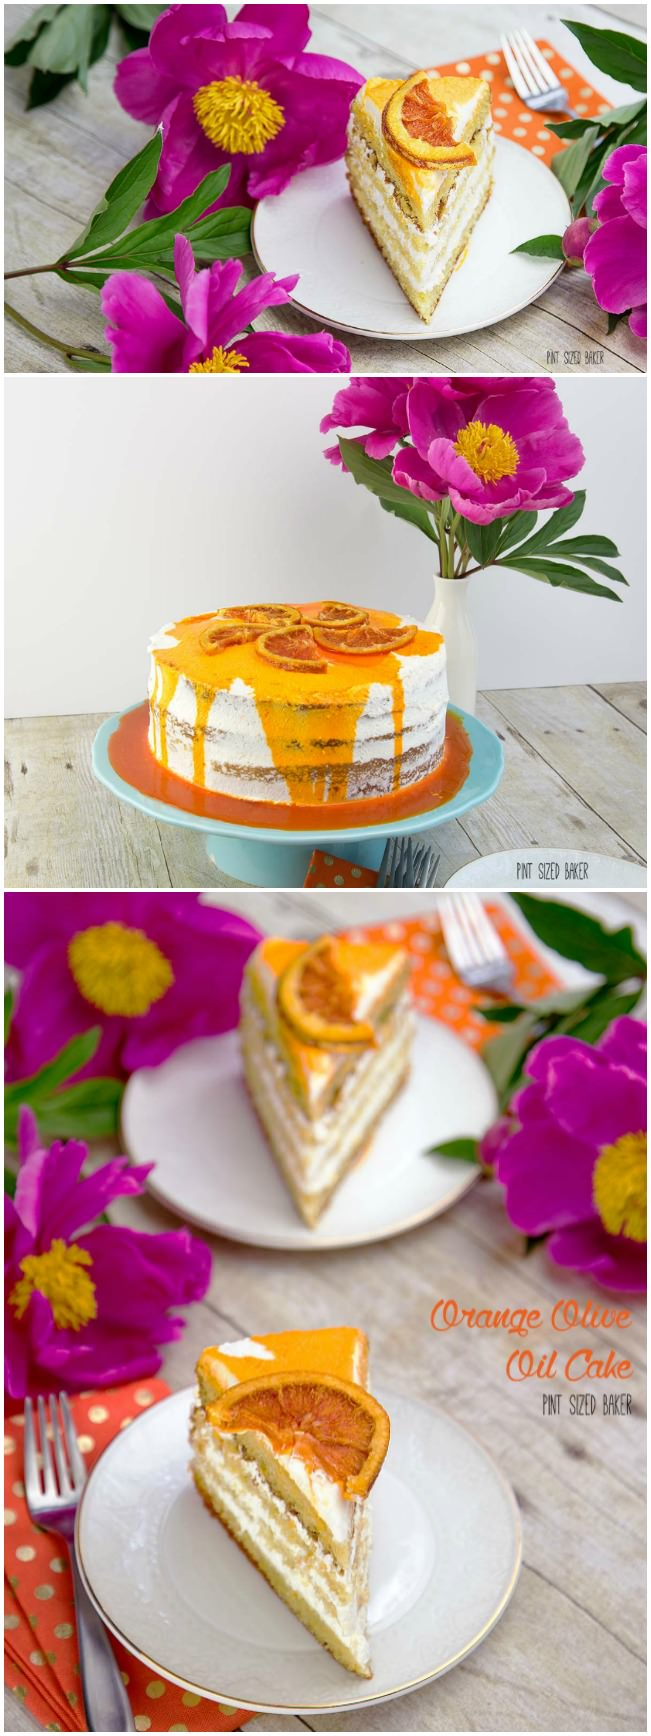 A beautiful Orange Olive Oil Cake recipe with whipped cream frosting and candied Cara Cara Orange slices on top.